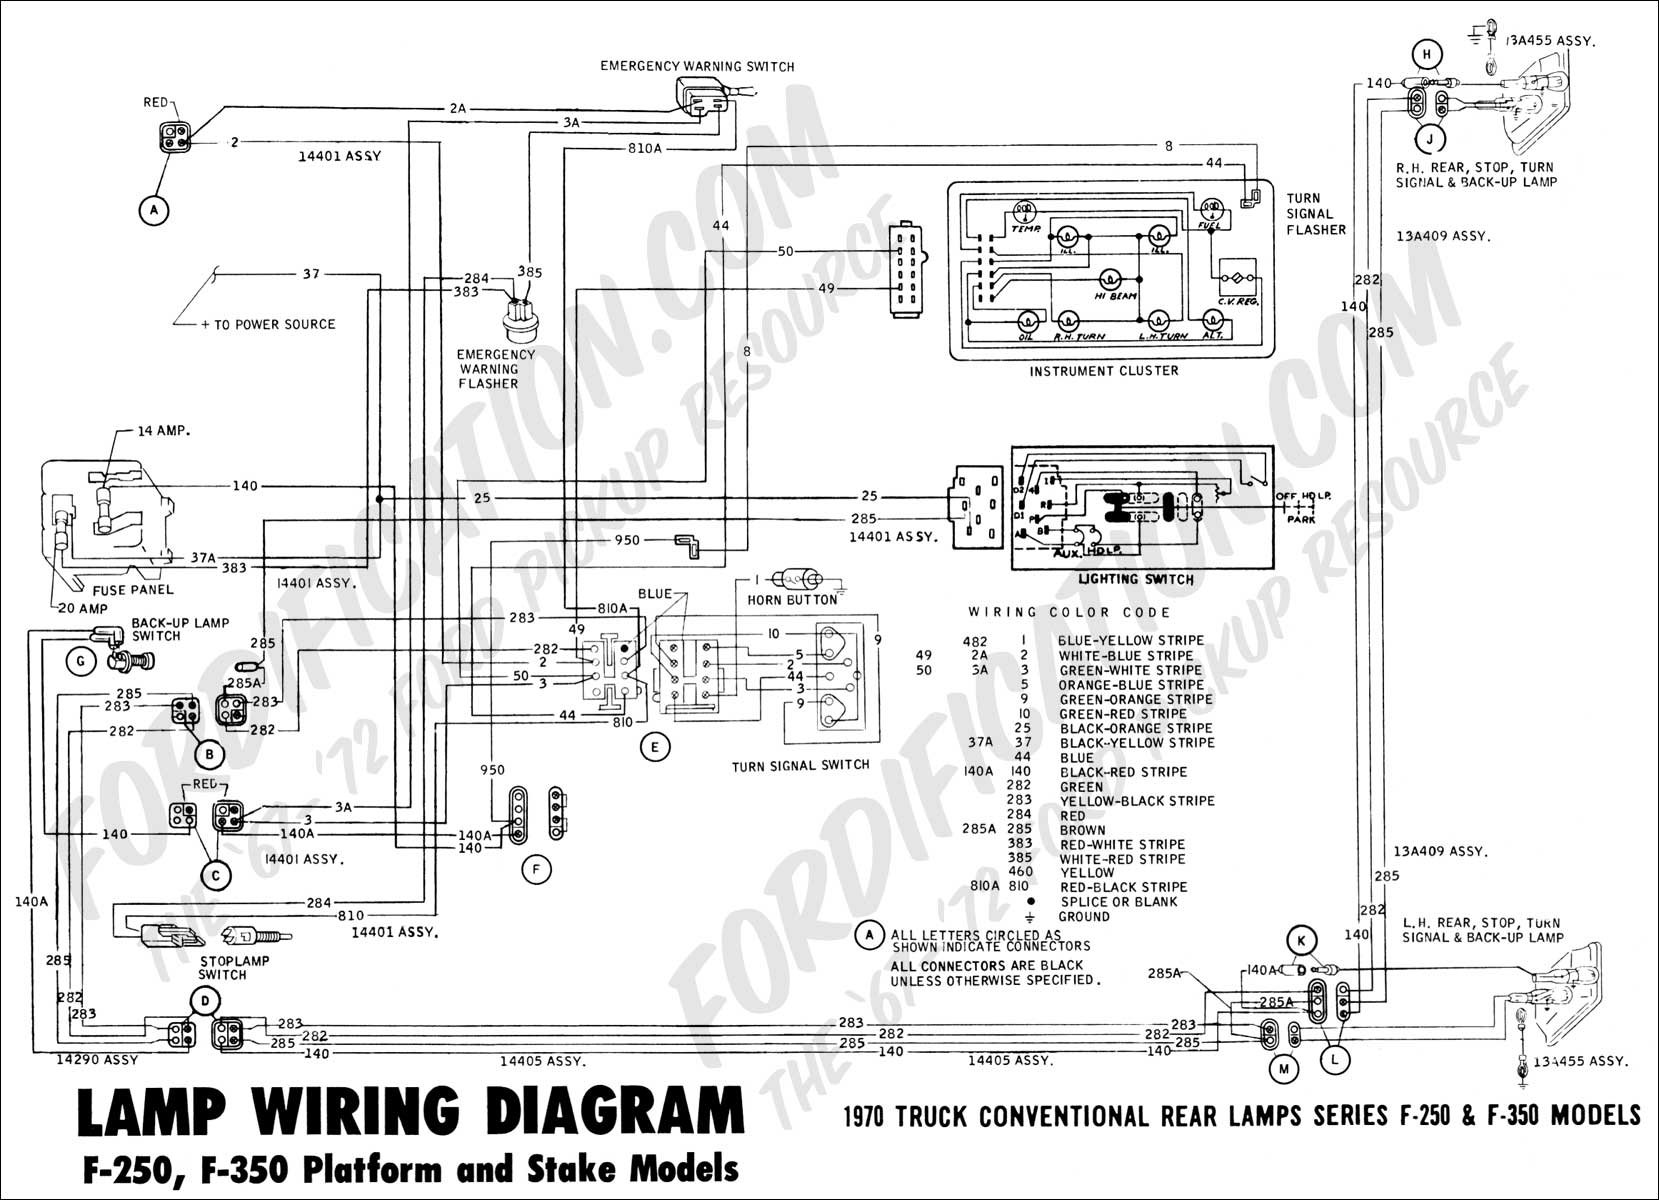 1994 f250 wiring diagram 4x4 enthusiast wiring diagrams u2022 rh rasalibre  co 1979 Ford F-